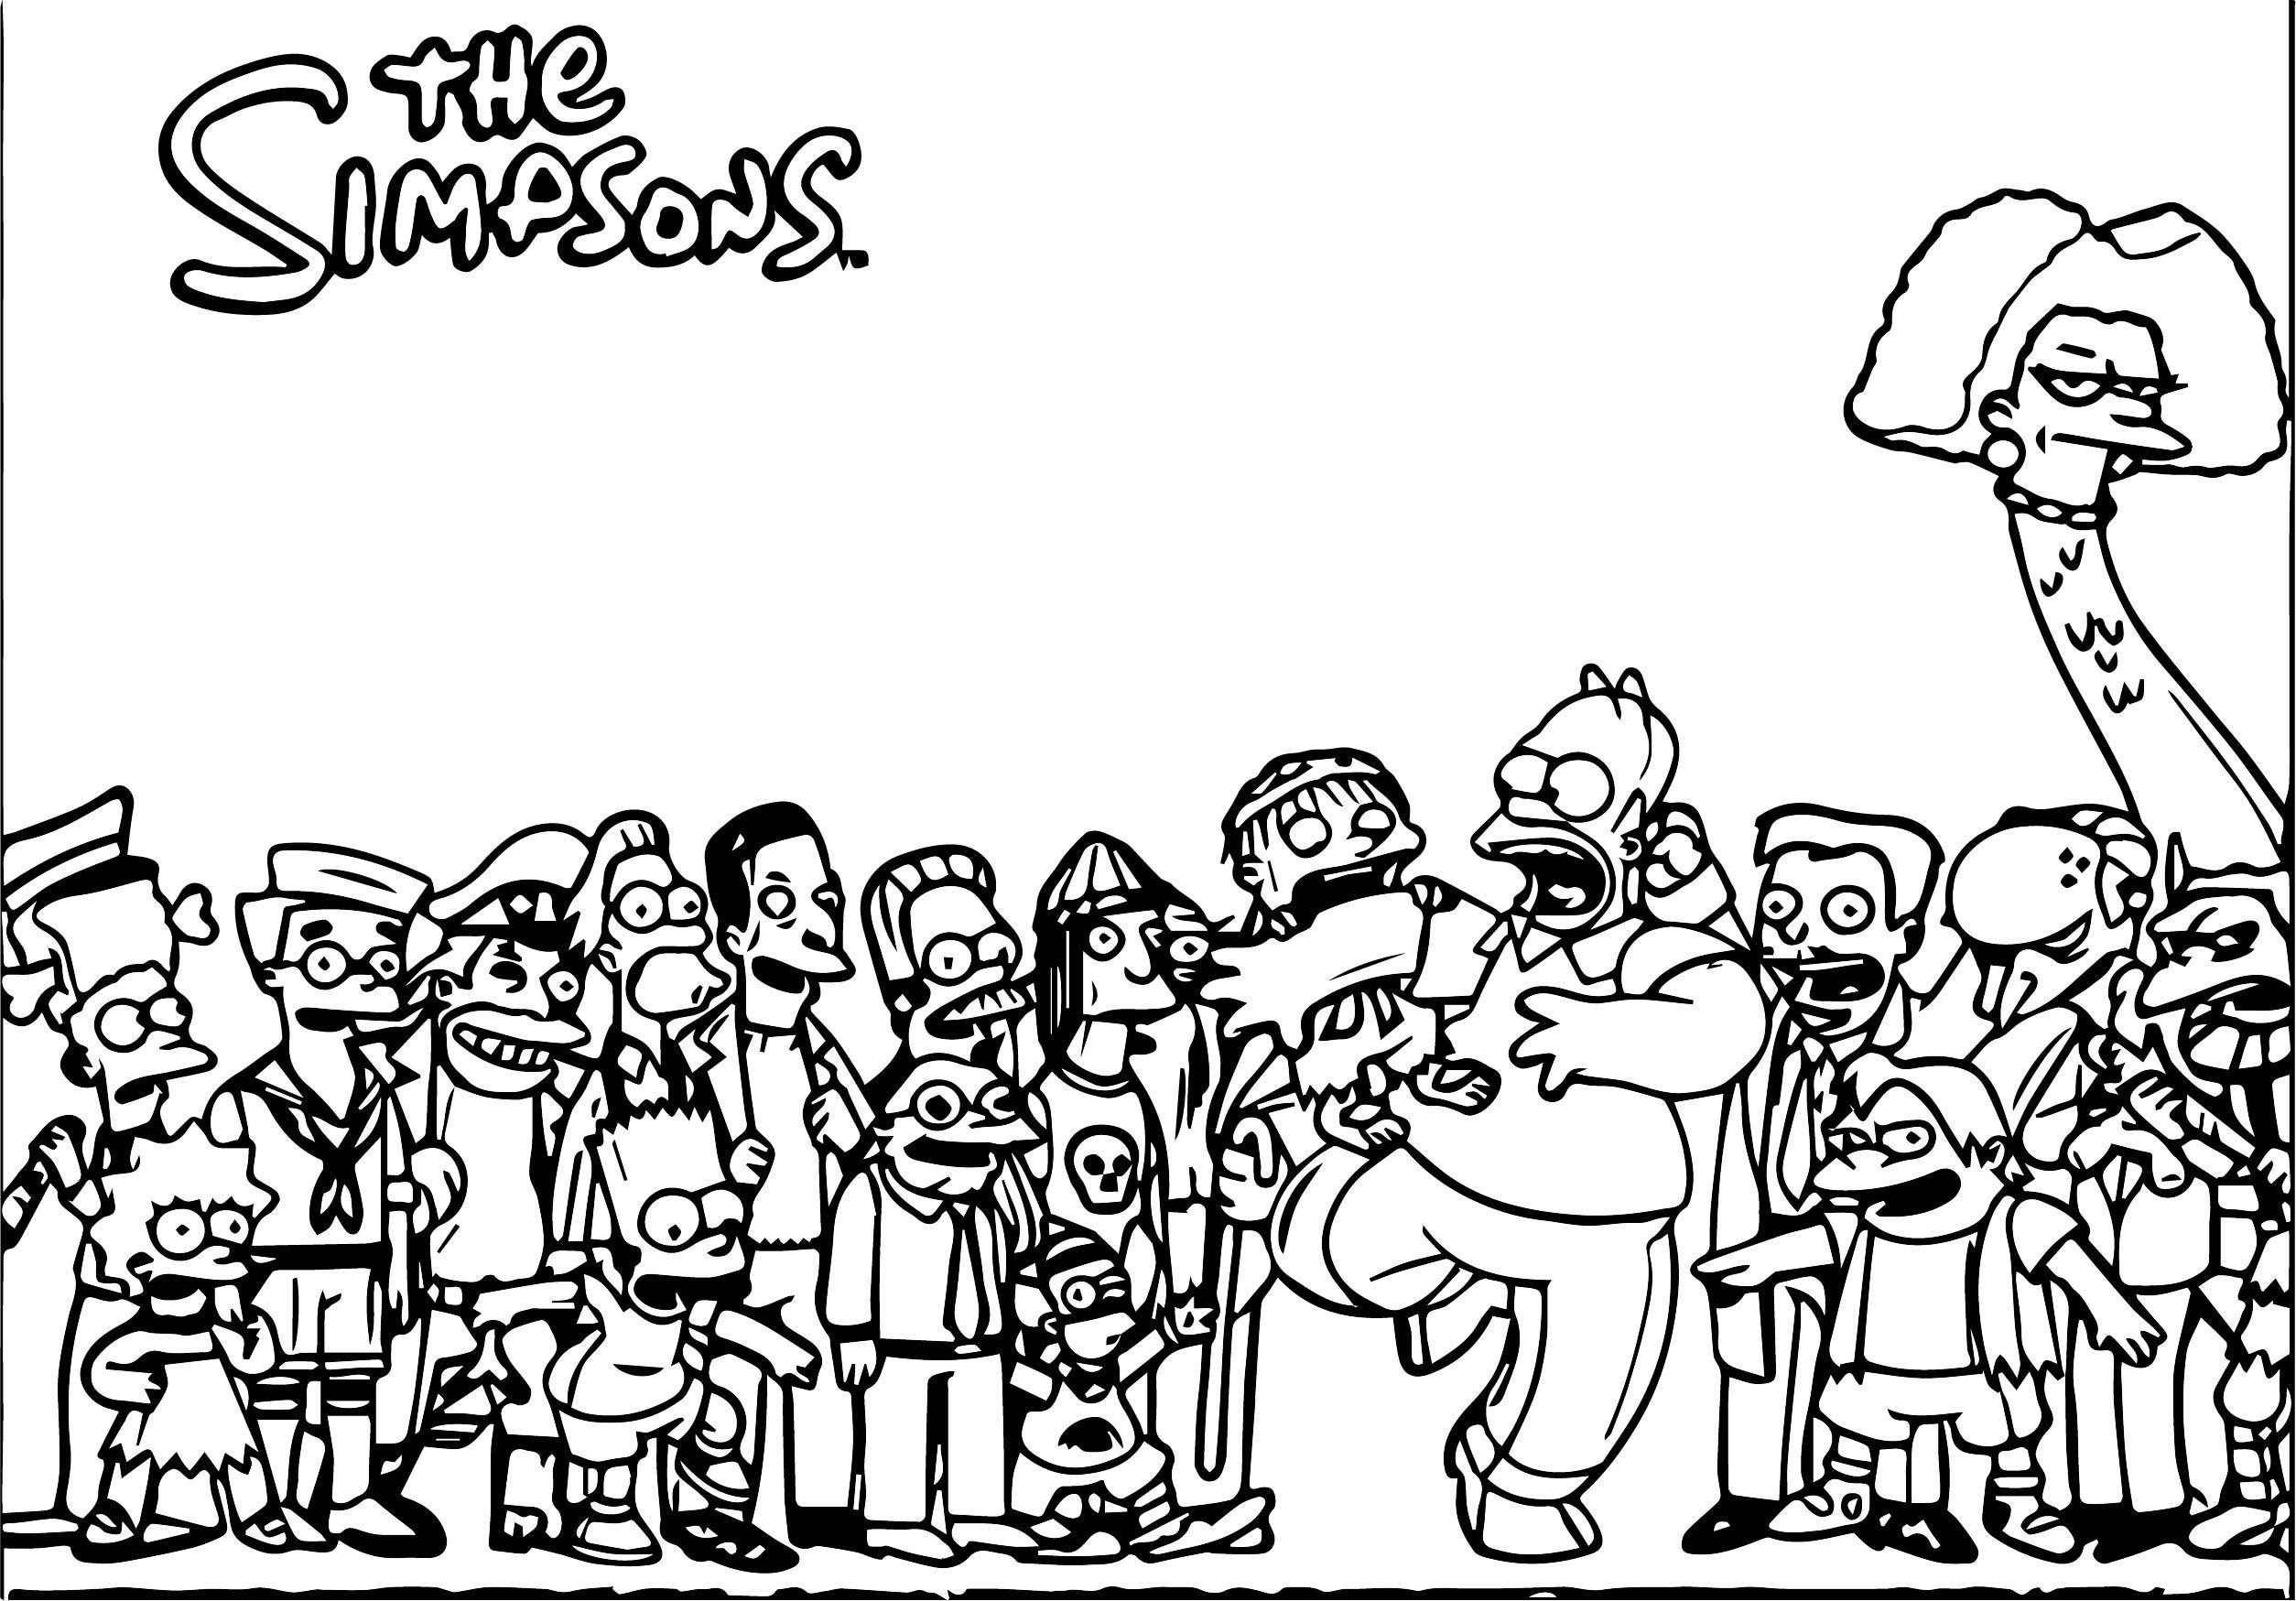 The Simpsons Coloring Page 224